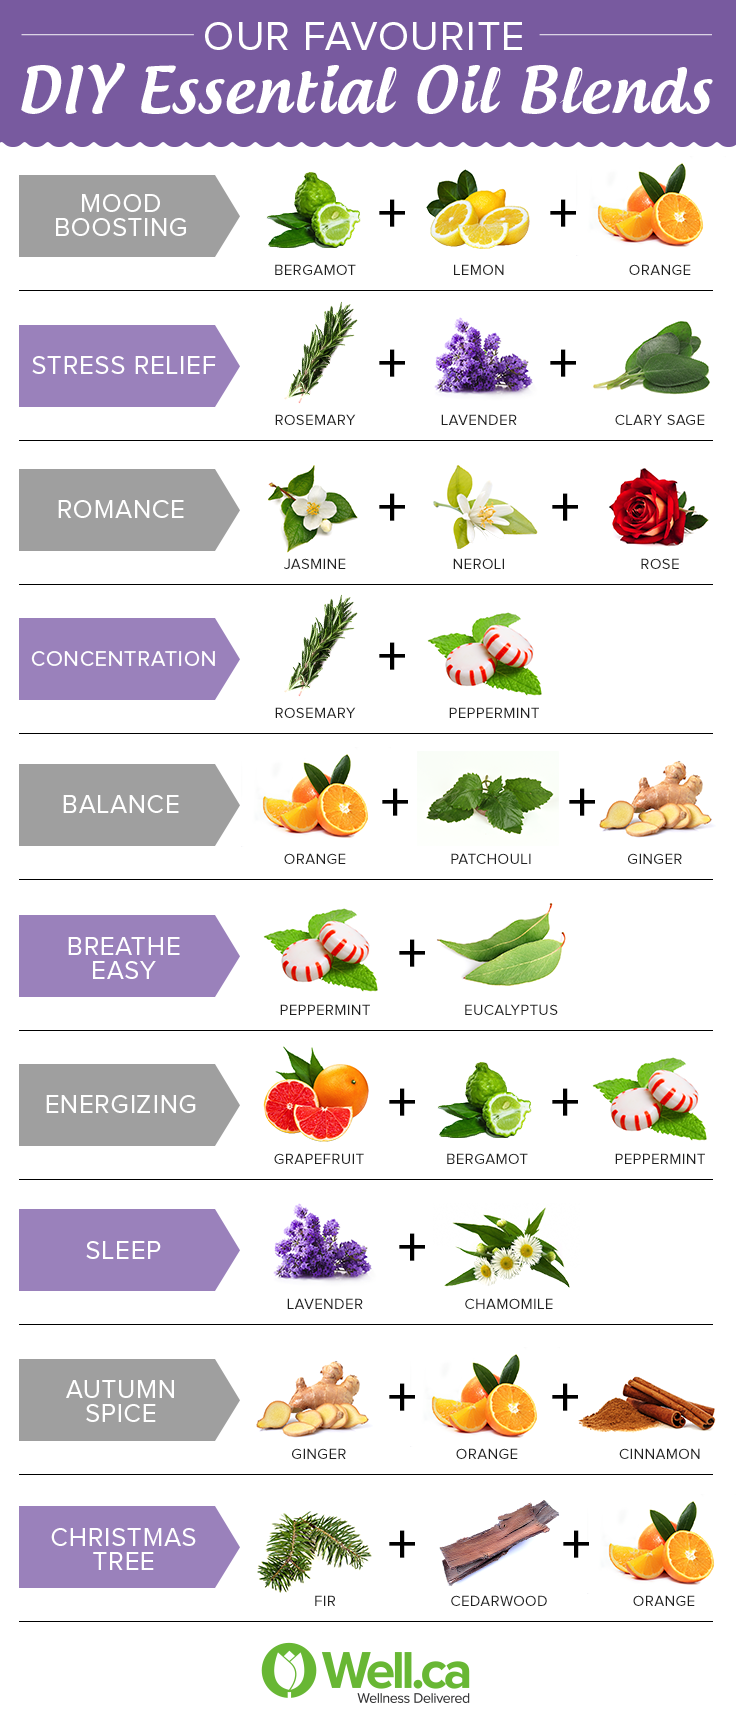 Our Favourite Essential Oil Blends For Aromatherapy Essential Oils Aromatherapy Essential Oil Diffuser Blends Essential Oils